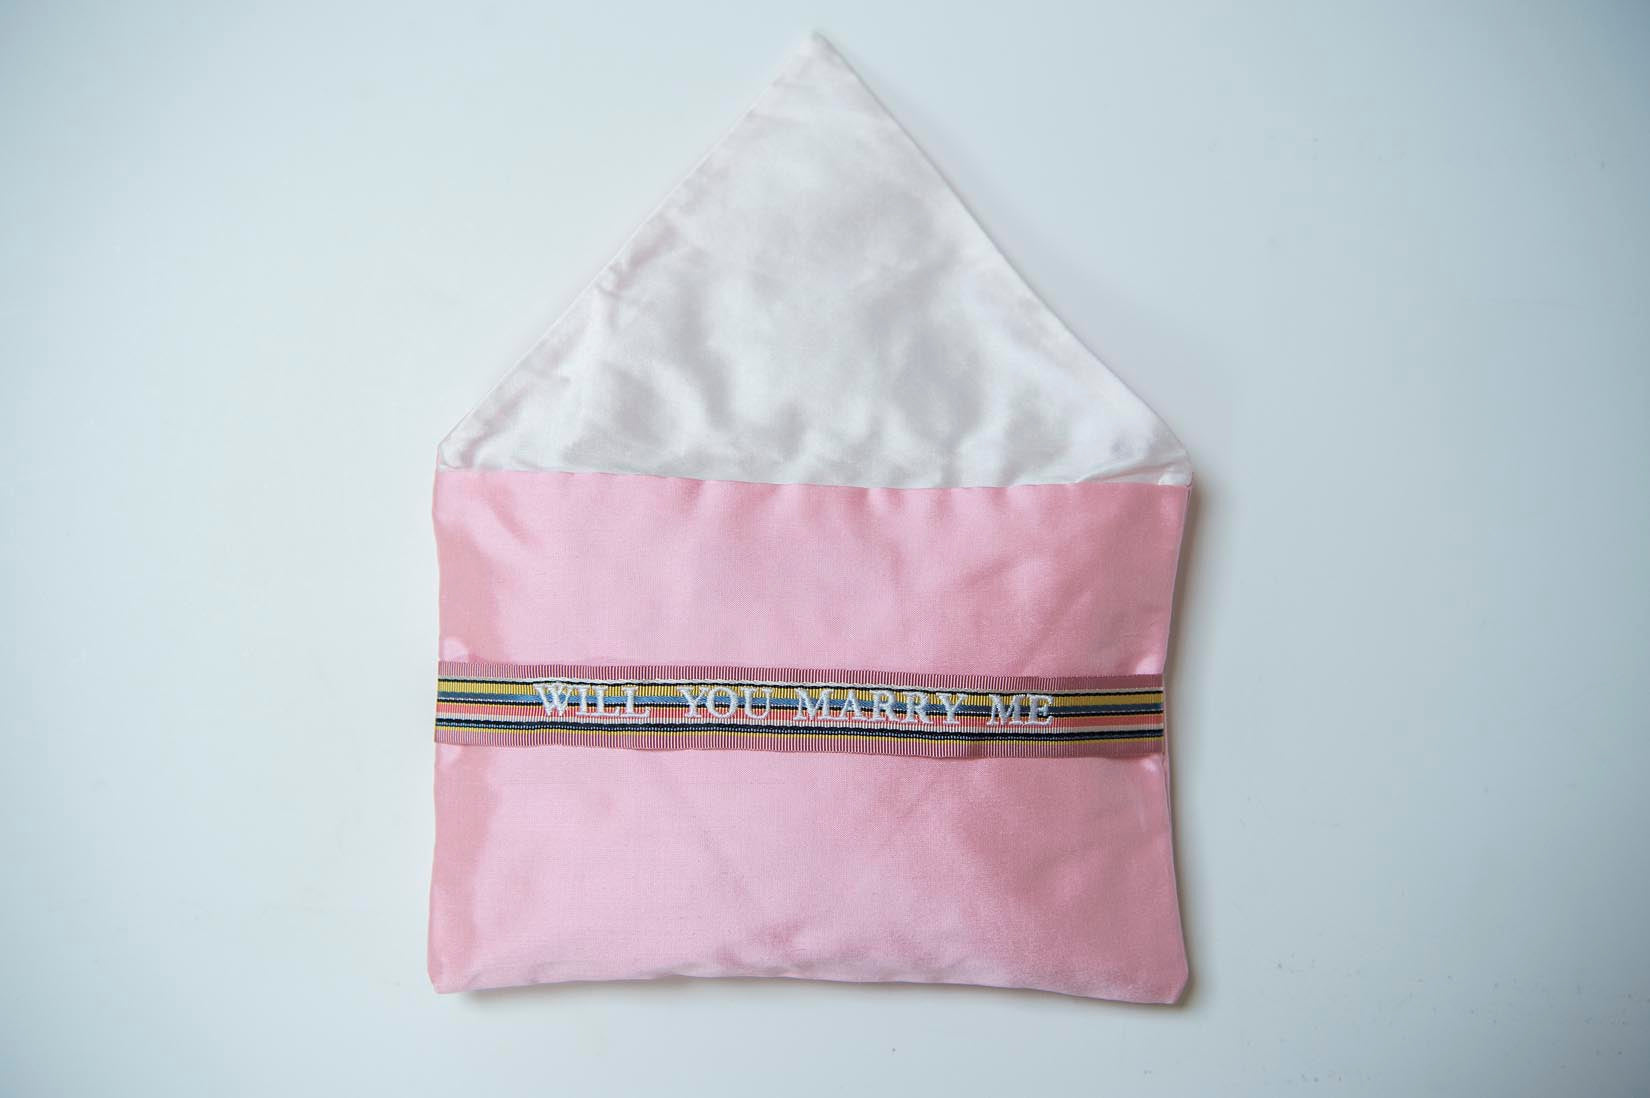 Will you marry me- candy silk envelope cushion - MyBilletDoux.com